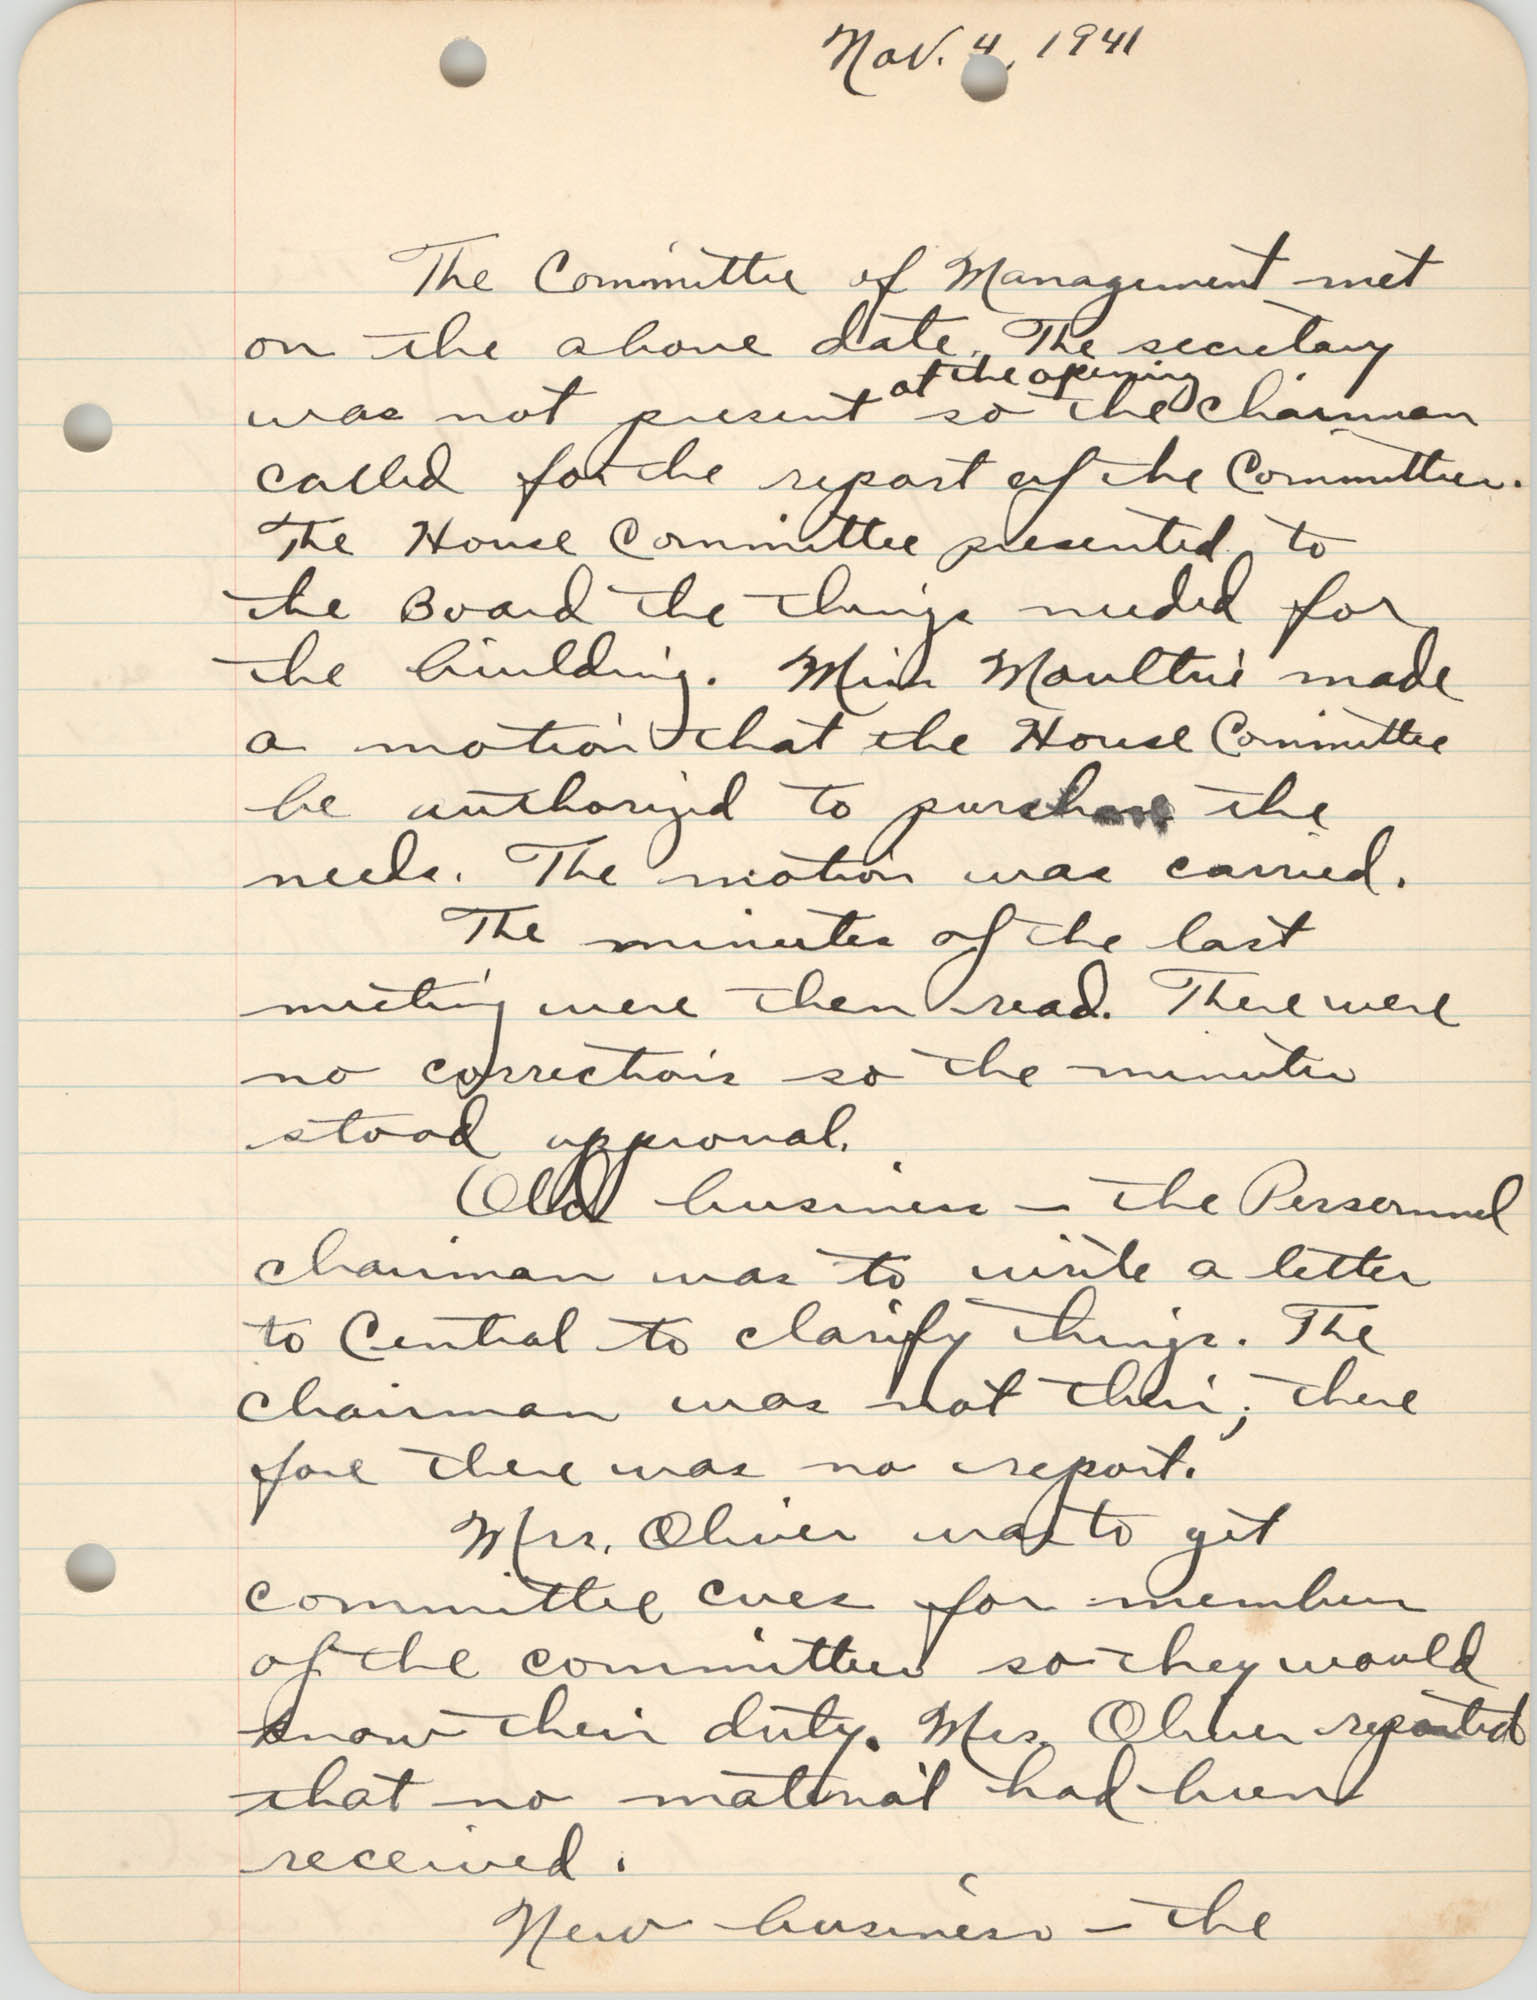 Minutes to the Committee of Management, Coming Street Y.W.C.A., November 4, 1941